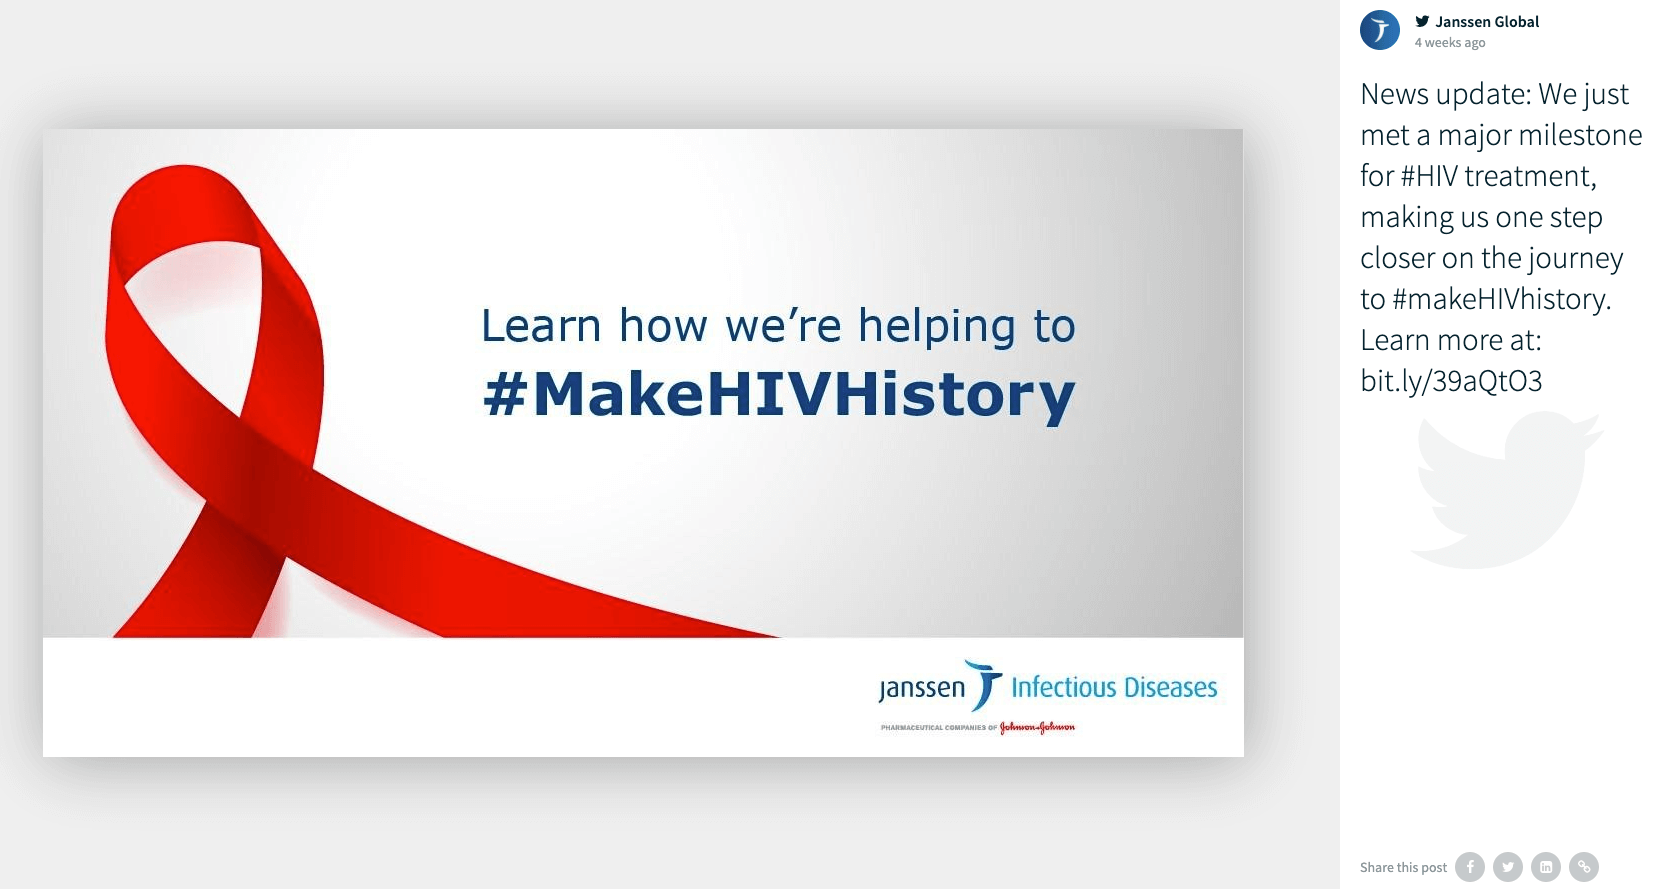 """Twitter post by @JanssenGlobal, as shown on the social wall. The image shows the red AIDS awareness ribbon and reads """"Learn how we're helping to #MakeHIVHistory"""". The Janssen Infectious Diseases logo is shown in the bottom right corner of the image. The caption reads: """"News update: We just met a major milestone for #HIV treatment, making us one step closer on the journey to #makeHIVhistory. Learn more at: https://bit.ly/39aQtO3"""""""